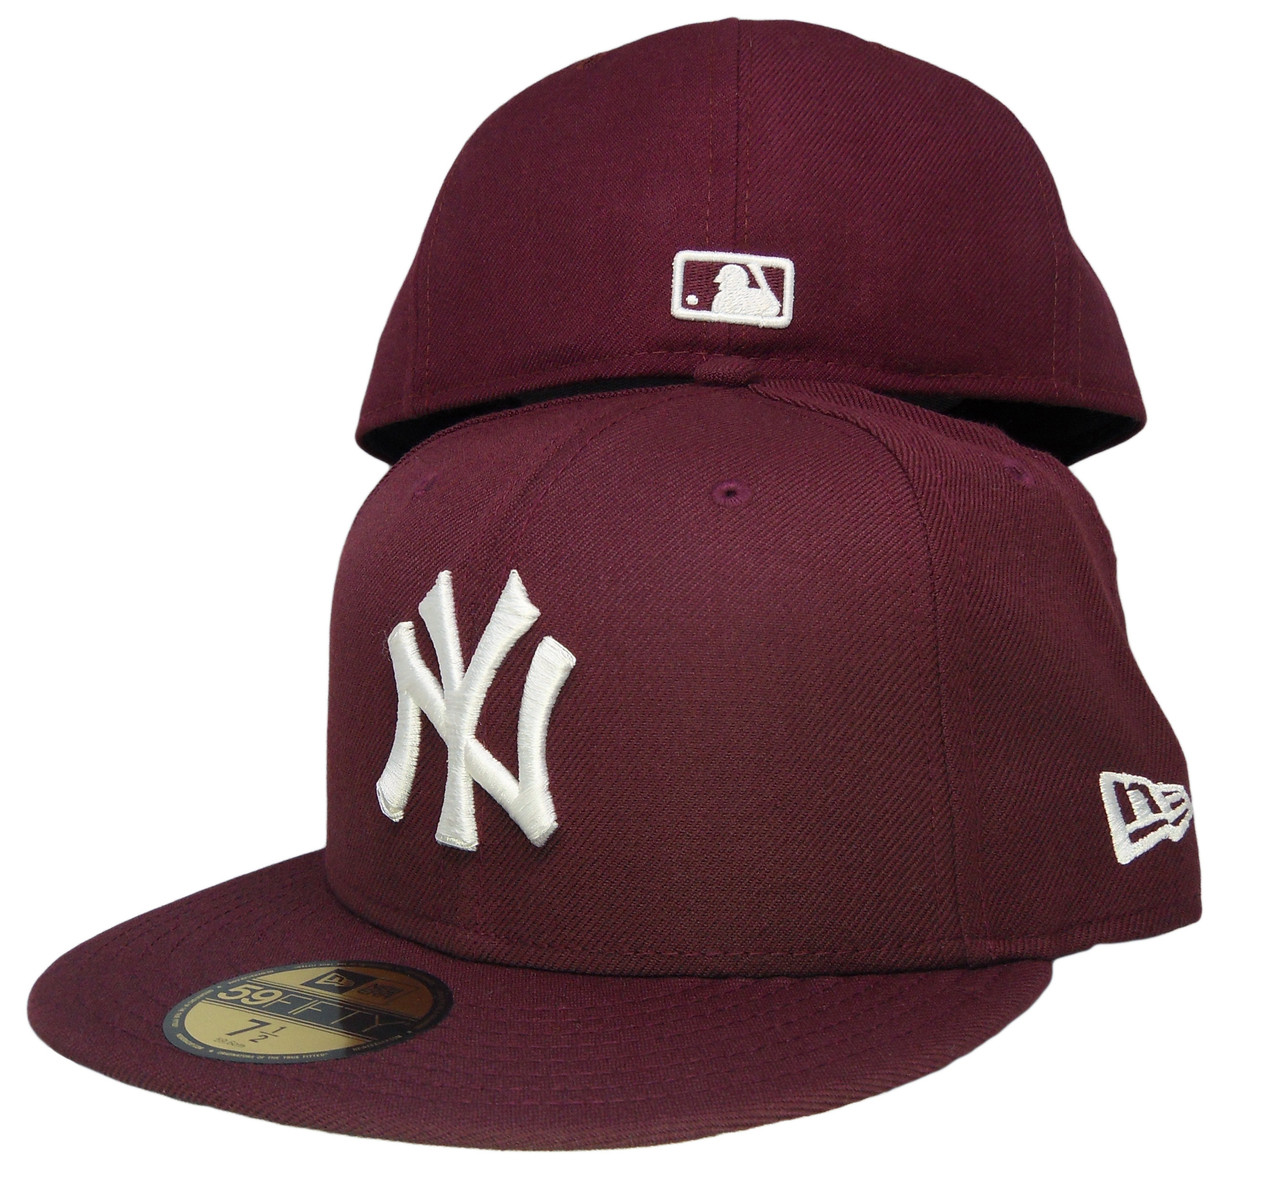 97815bbc3 New York Yankees New Era 59Fifty Basic Fitted Hat - Maroon, White -  ECapsUnlimited.com